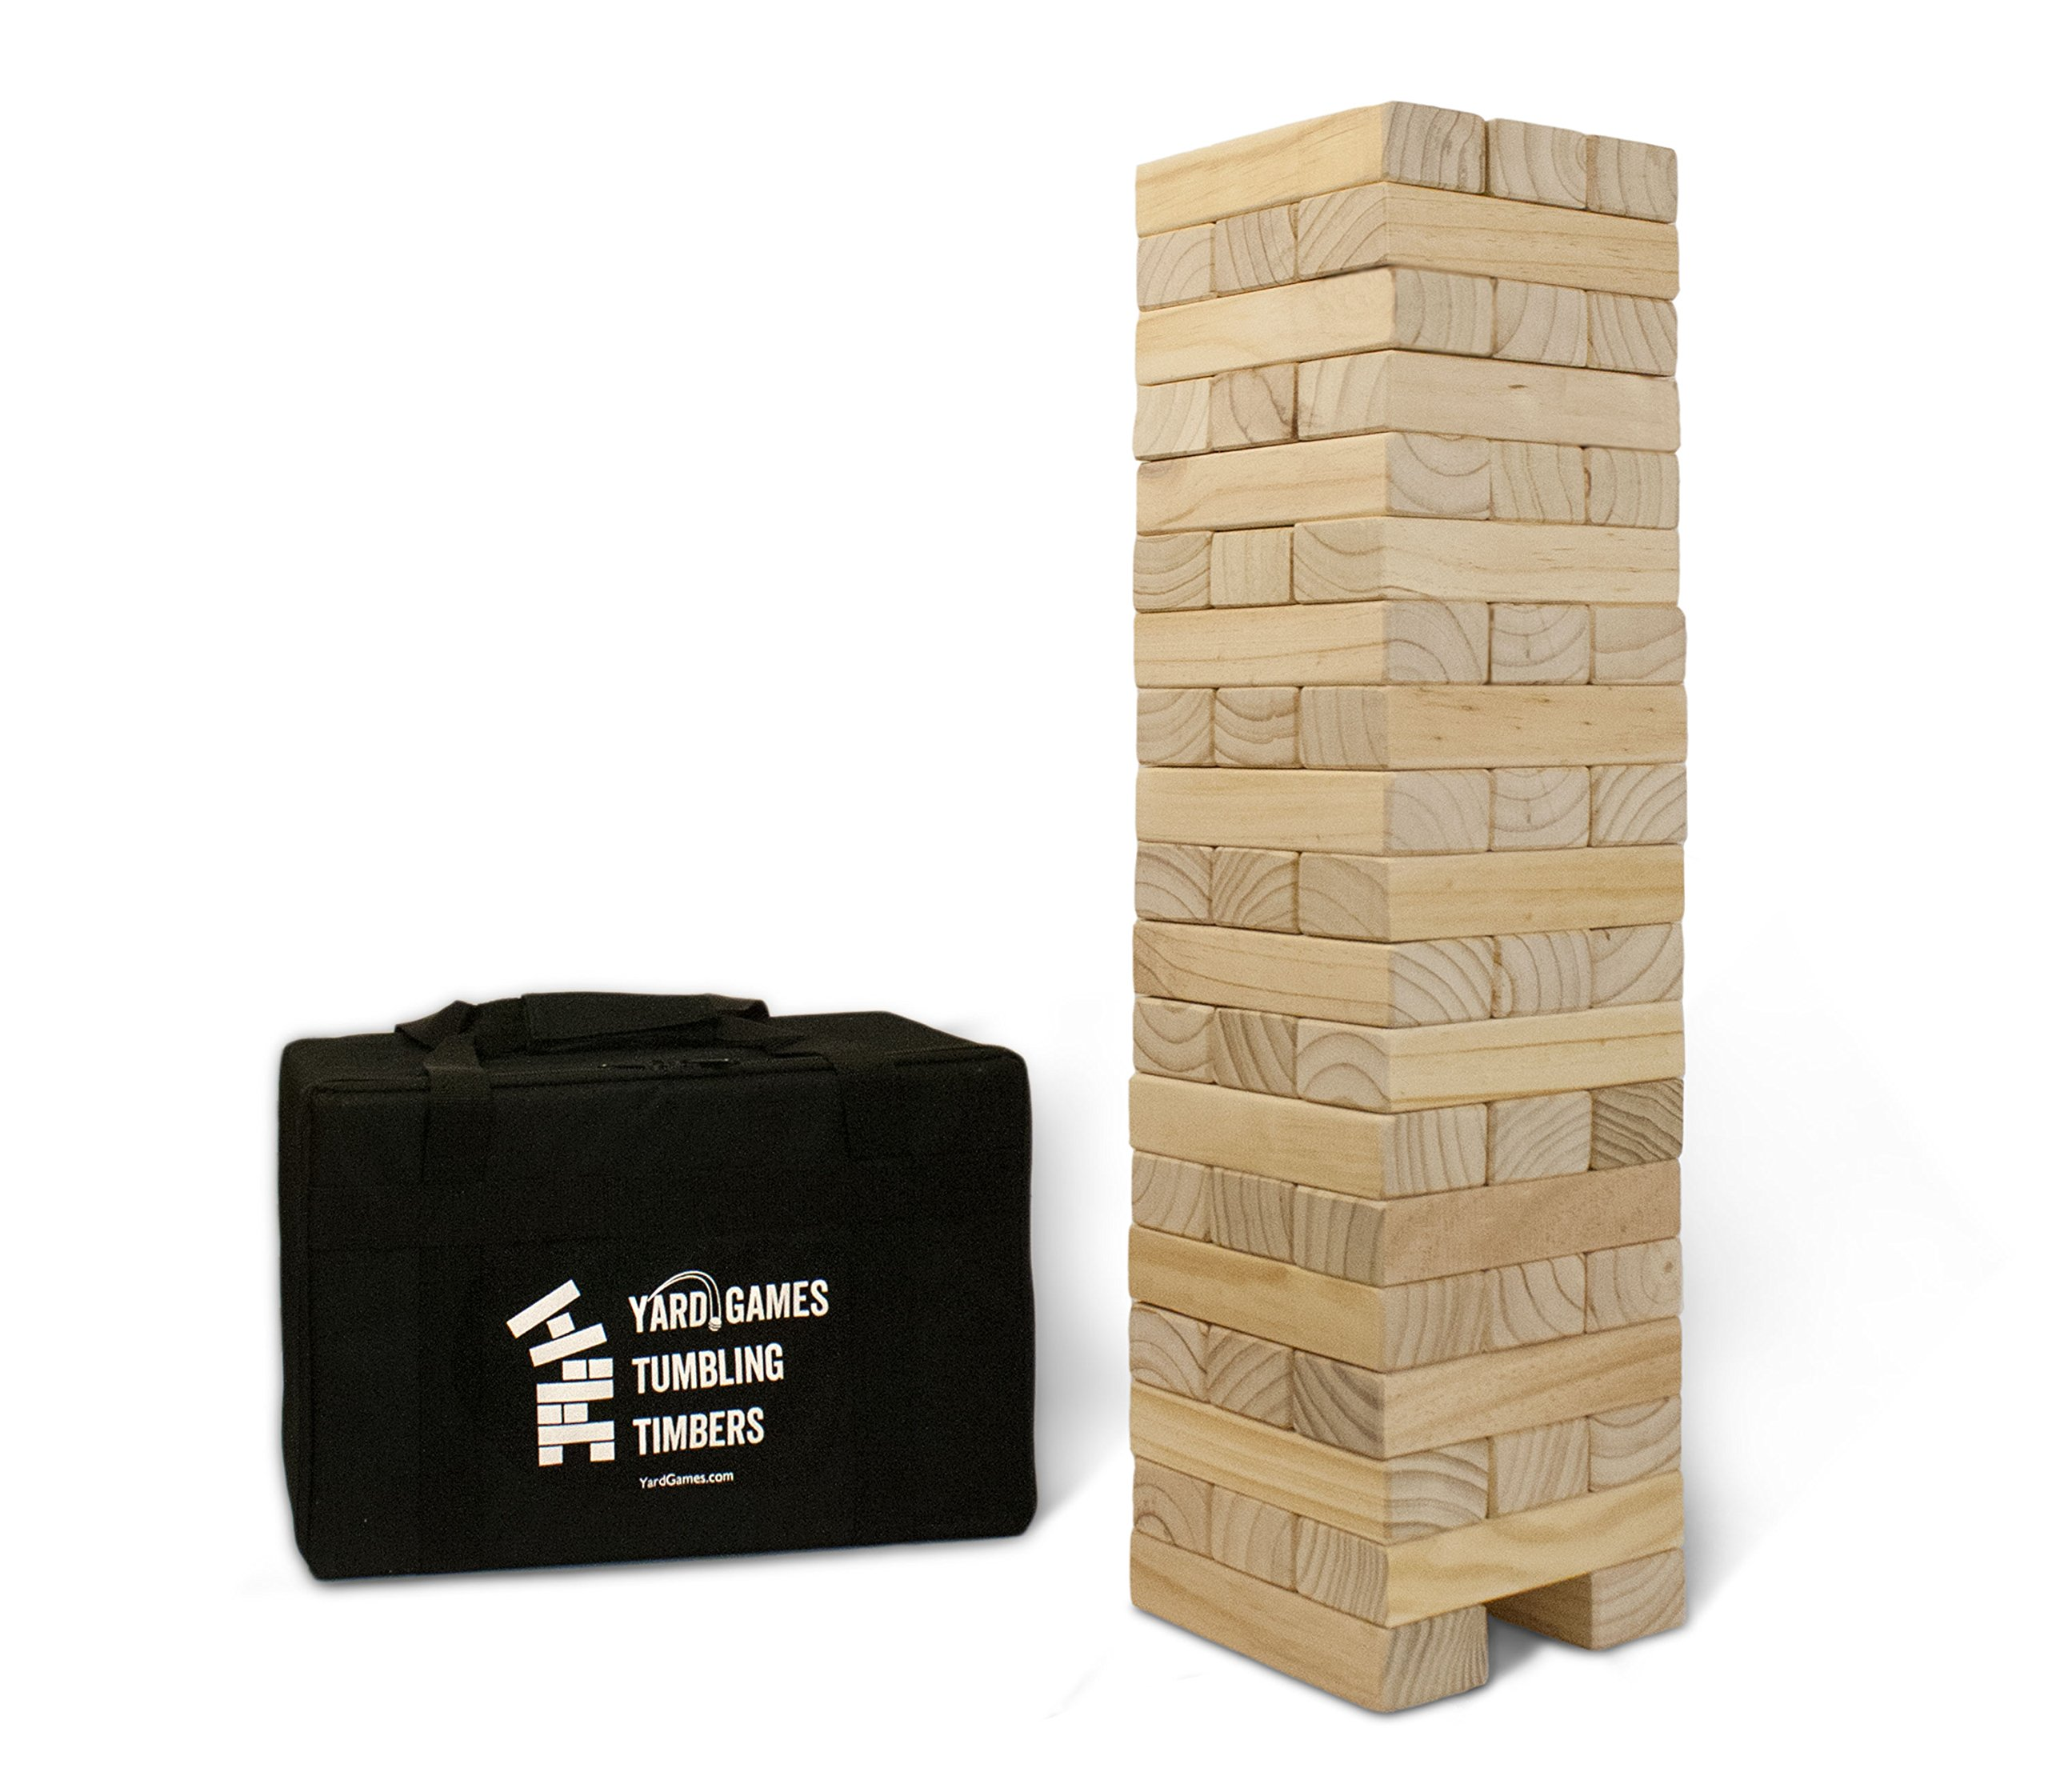 Yard Games Giant Tumbling Timbers with Carrying Case | Starts at 2.5-Feet Tall and Builds to Over 4-Feet | Made with Premium Pine Wood by Yard Games